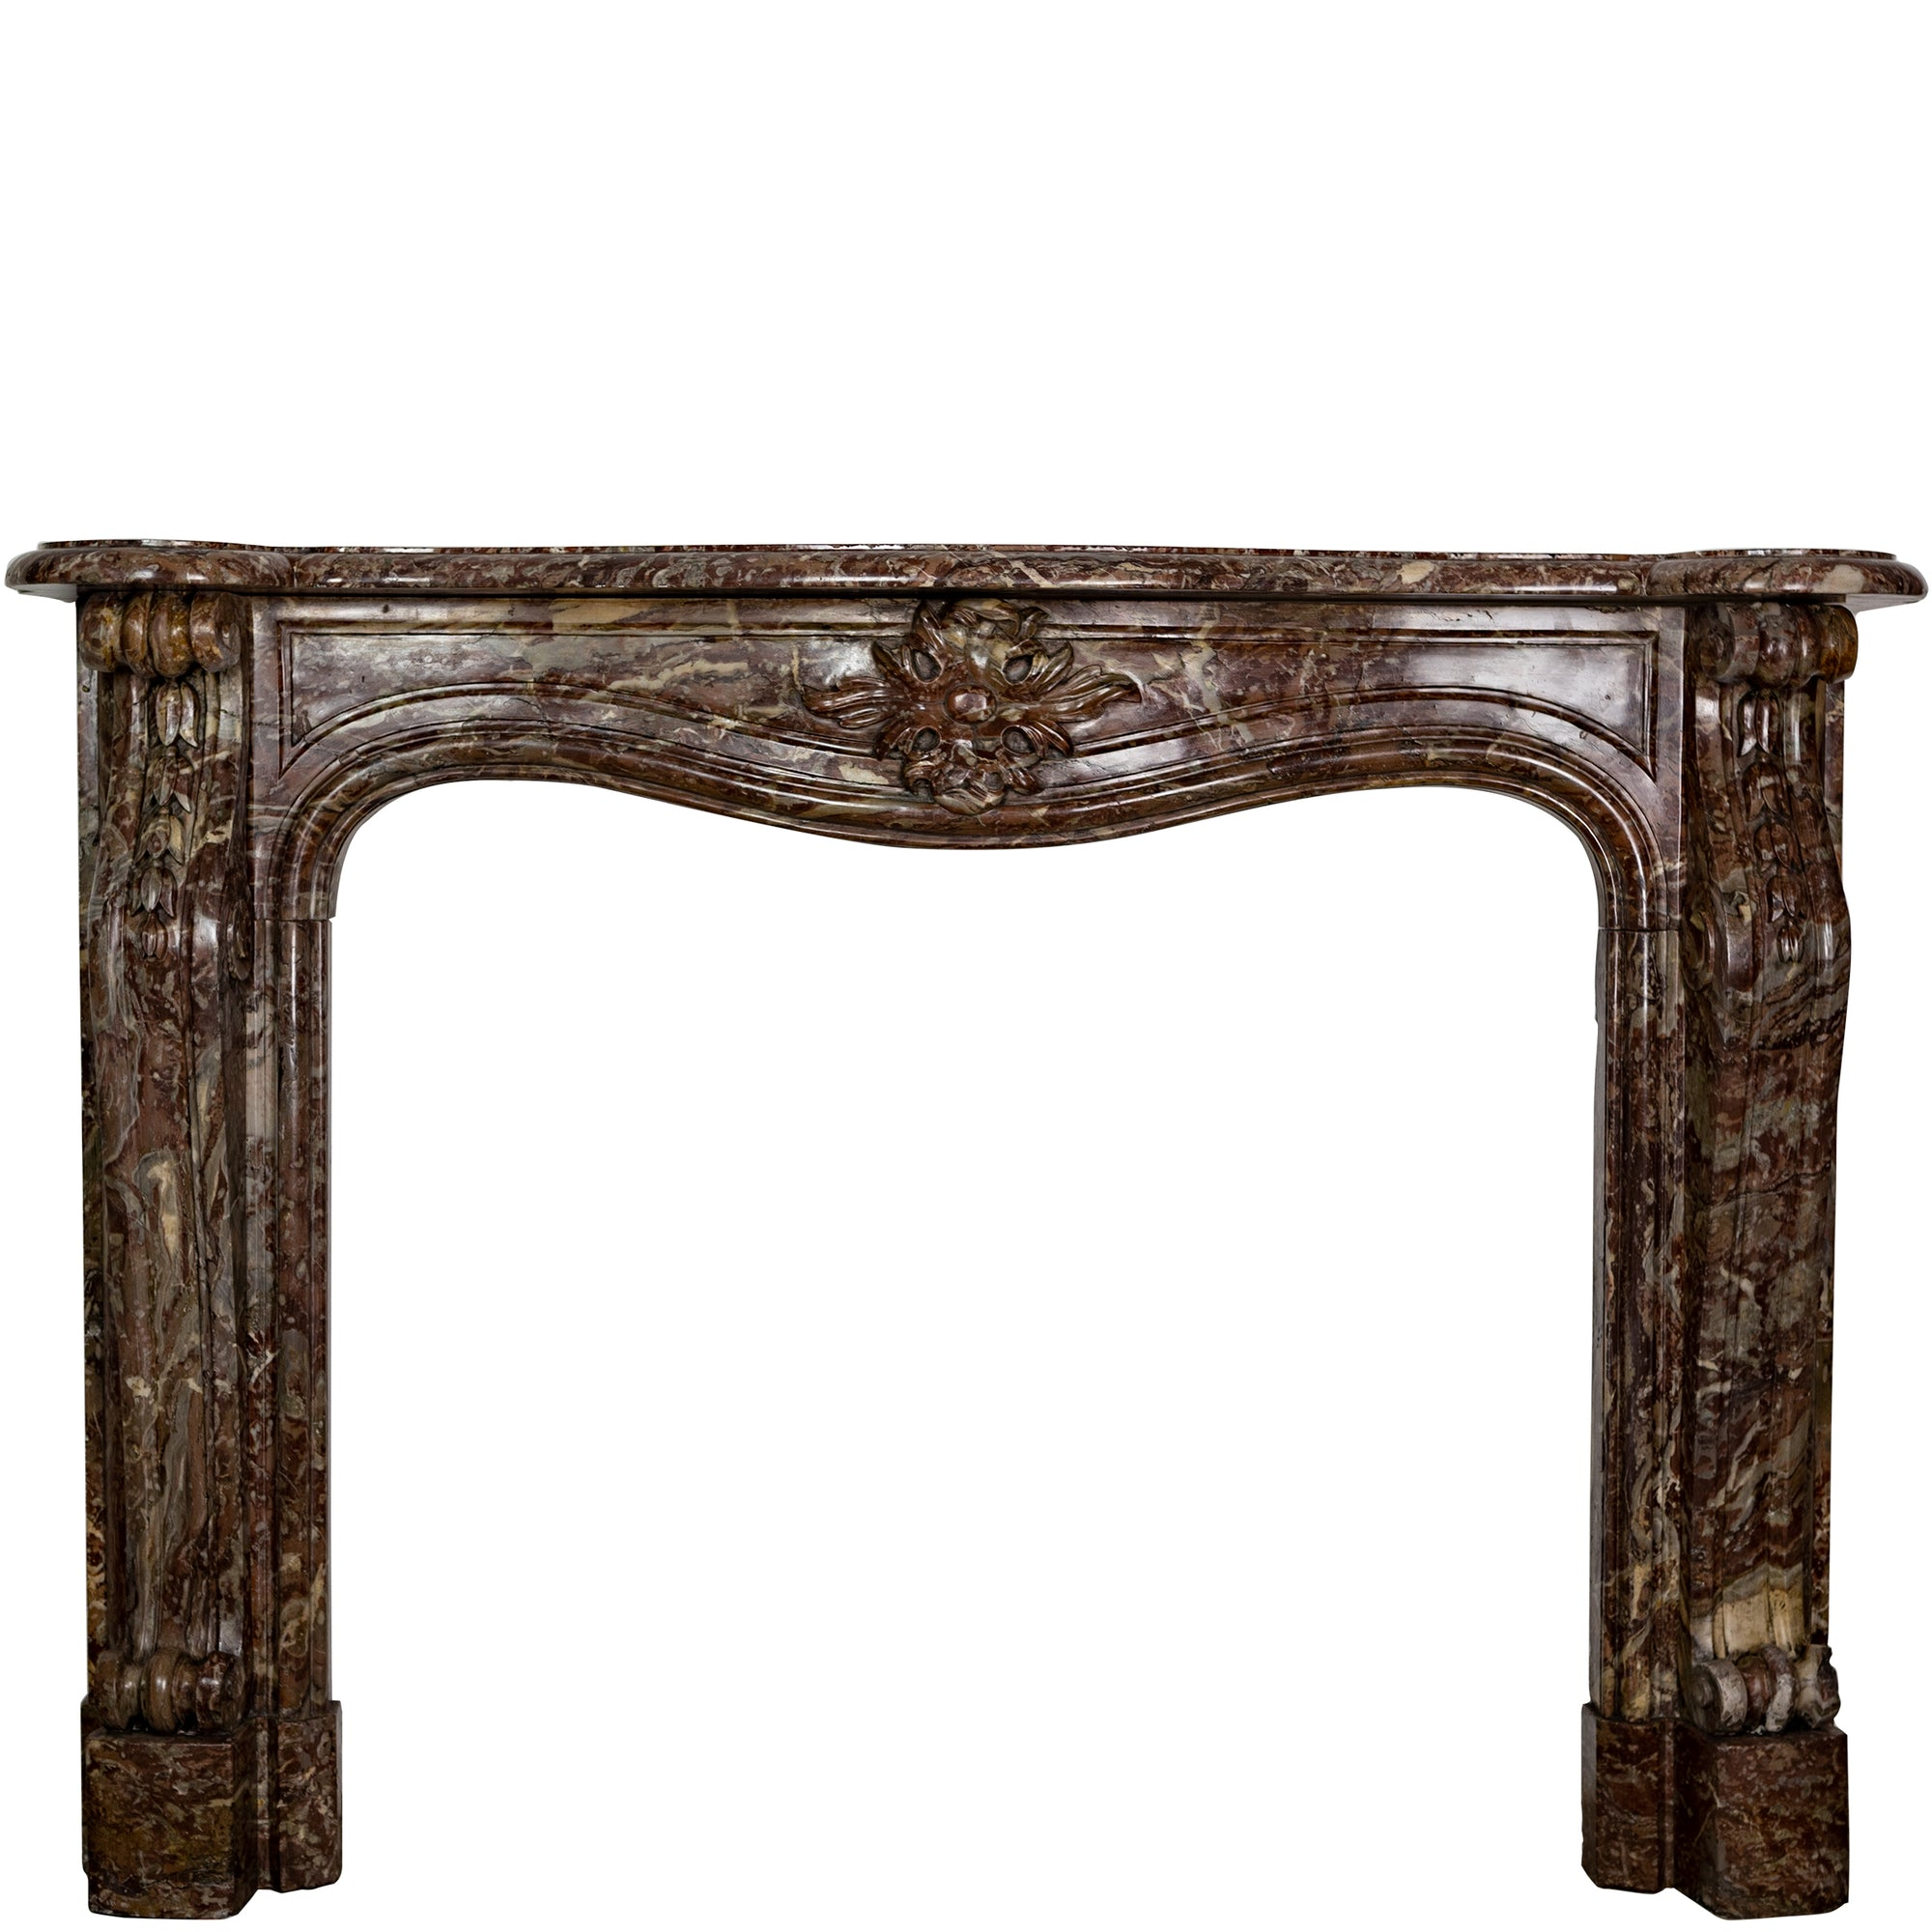 Reclaimed Louis XV Style Rococo Marble Fireplace Surround - architectural-forum